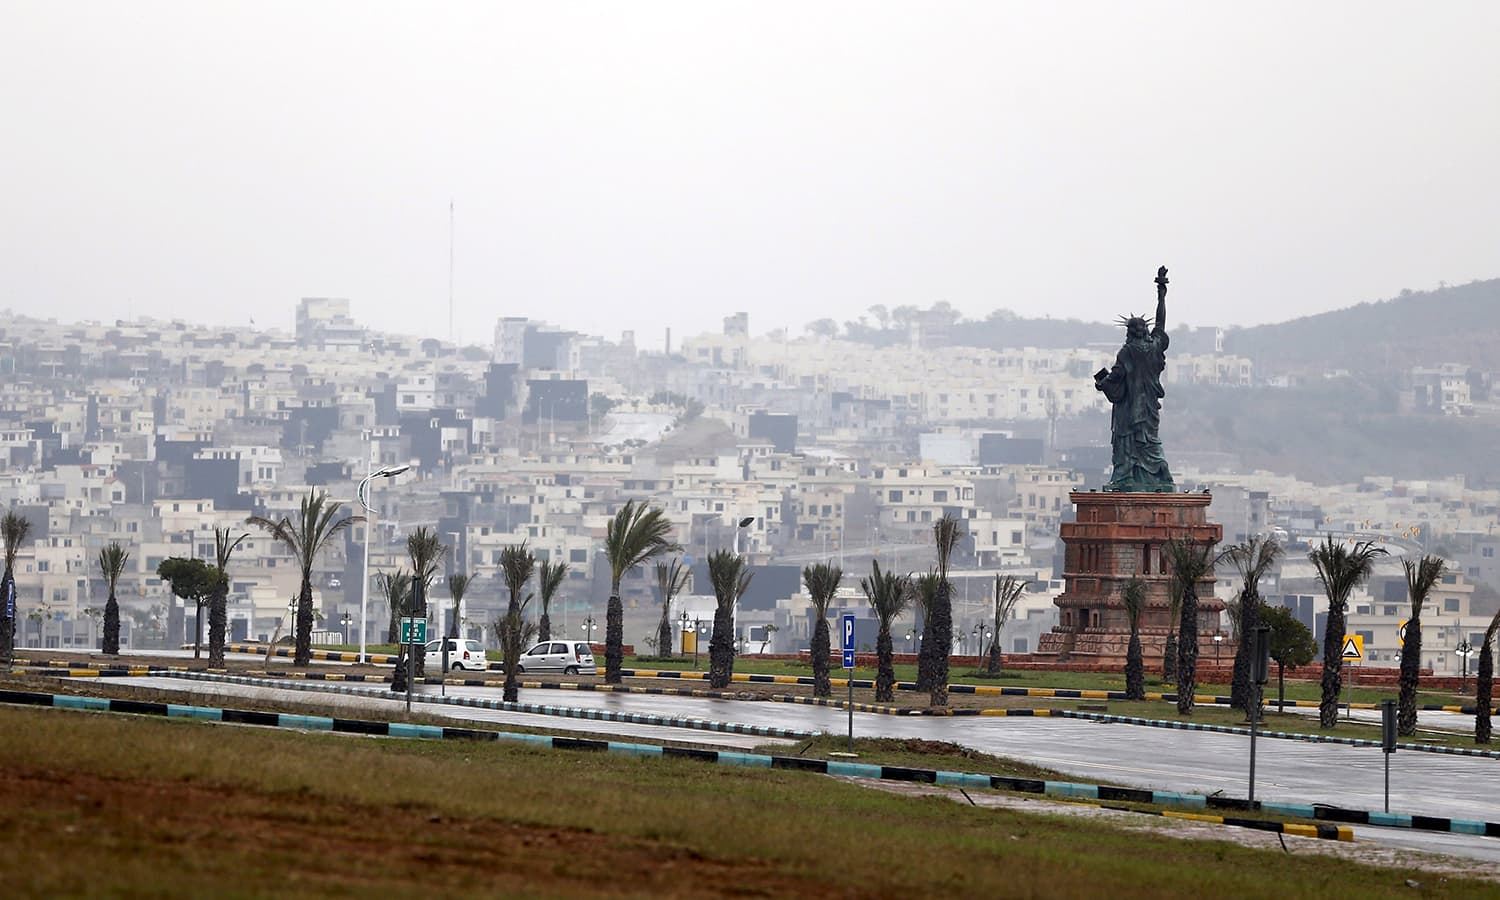 A replica of the Statue of Liberty stands on a hill overlooking the construction of new homes in Bahria Town on the outskirts of Islamabad.─Reuters